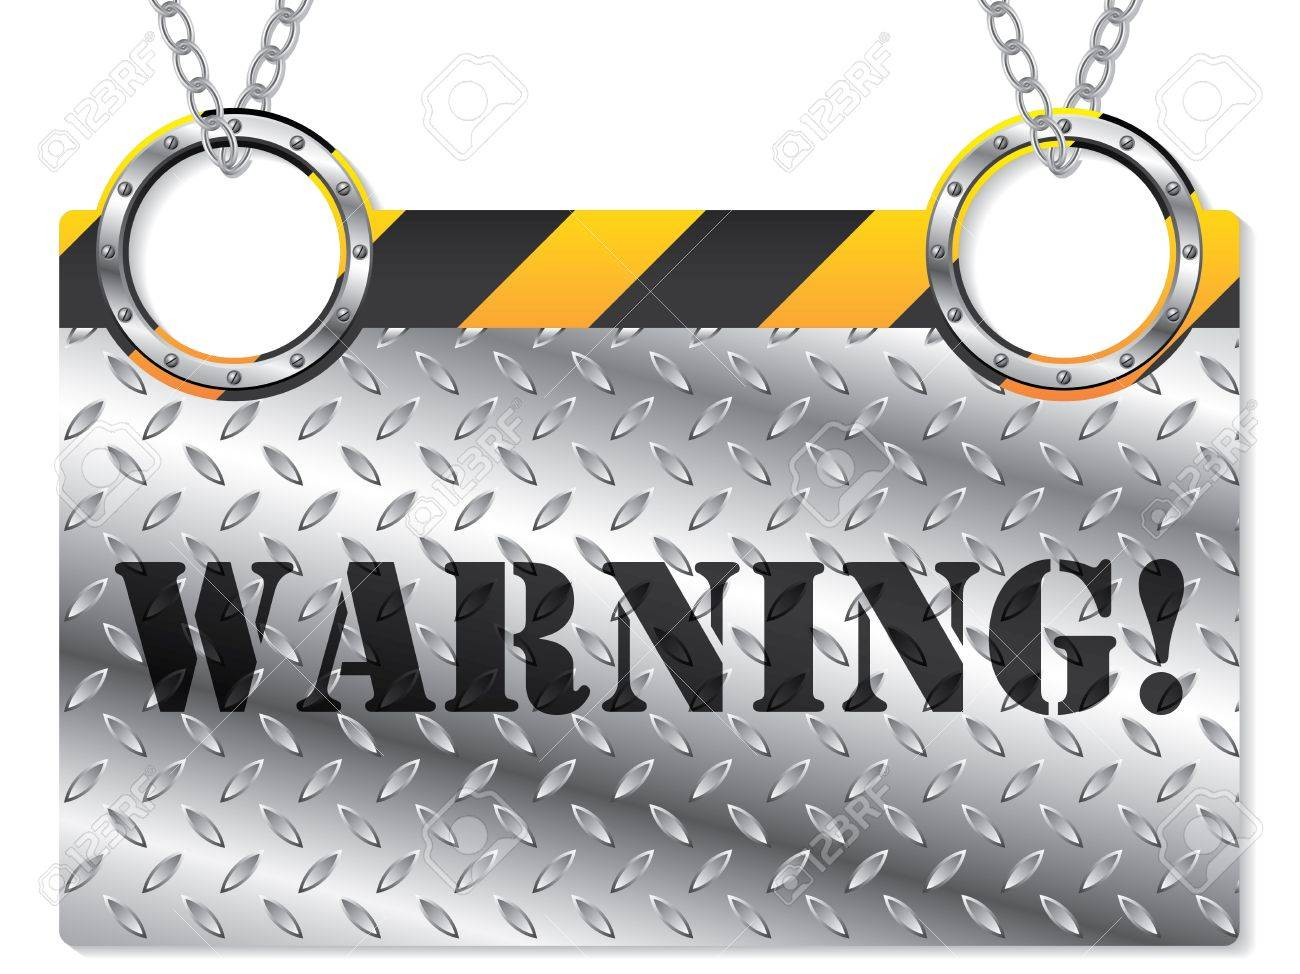 New metallic warning sign hanging on chains Stock Vector - 12004323